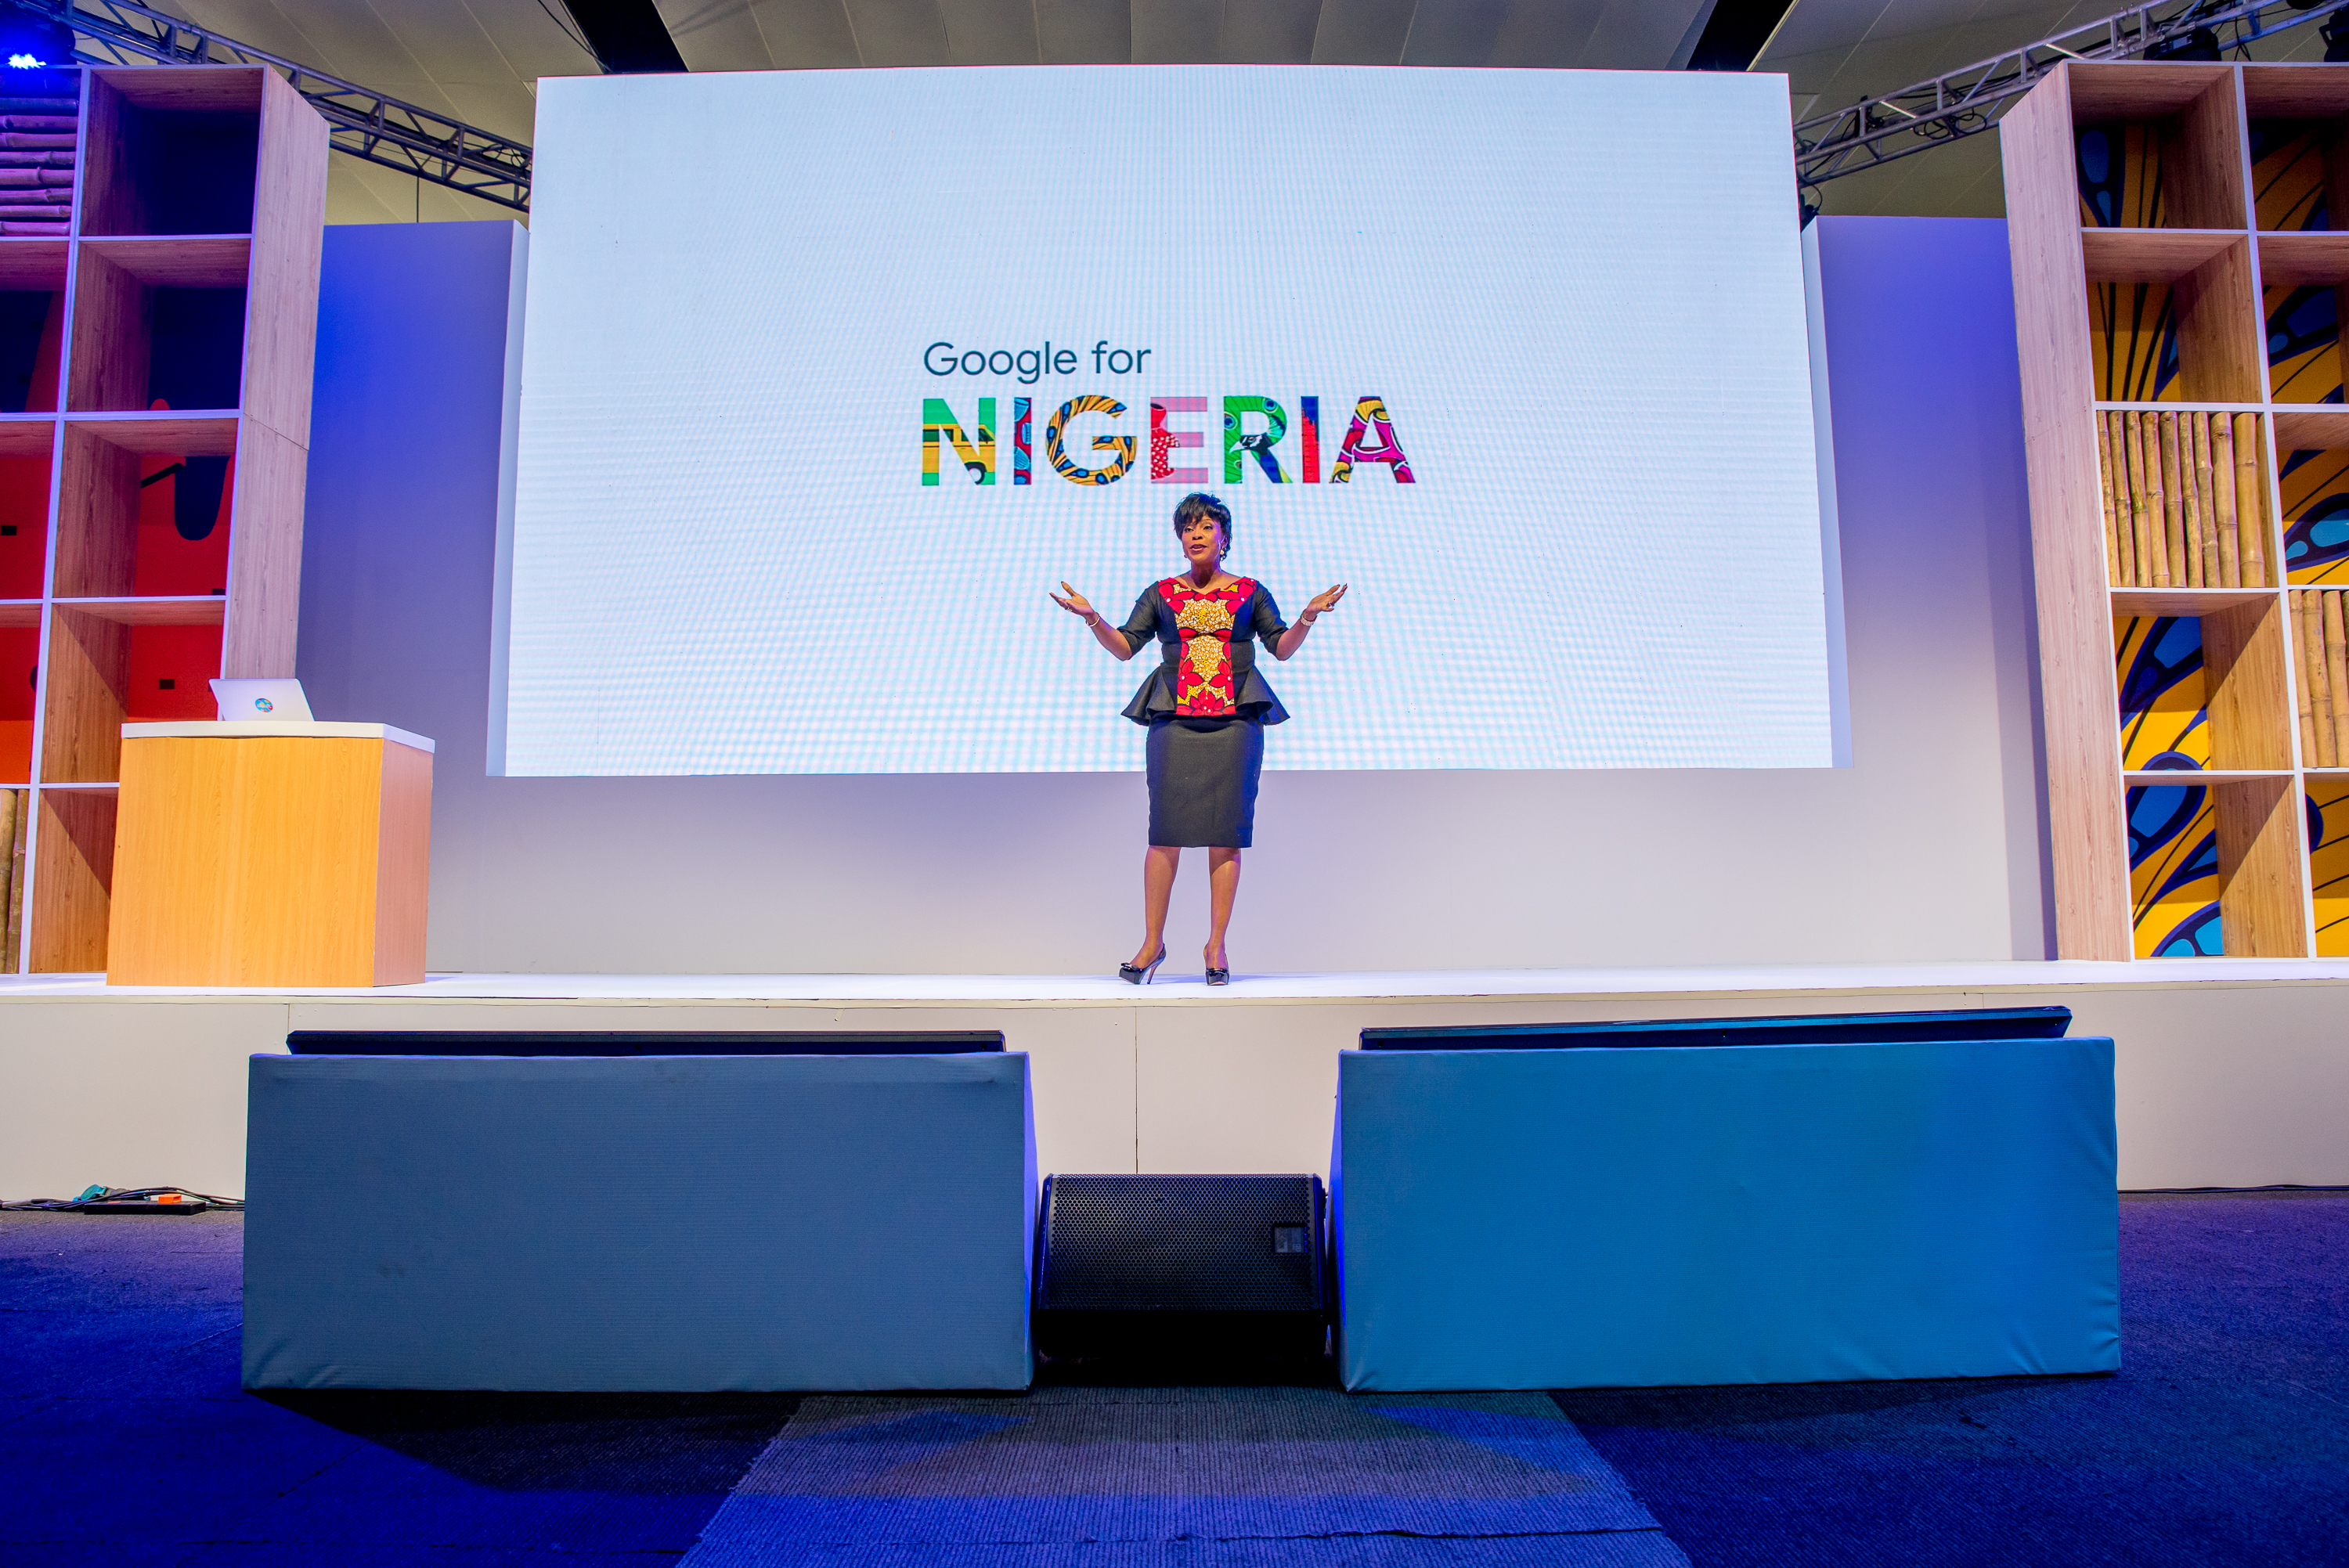 Google for Nigeria: making our products more helpful to more